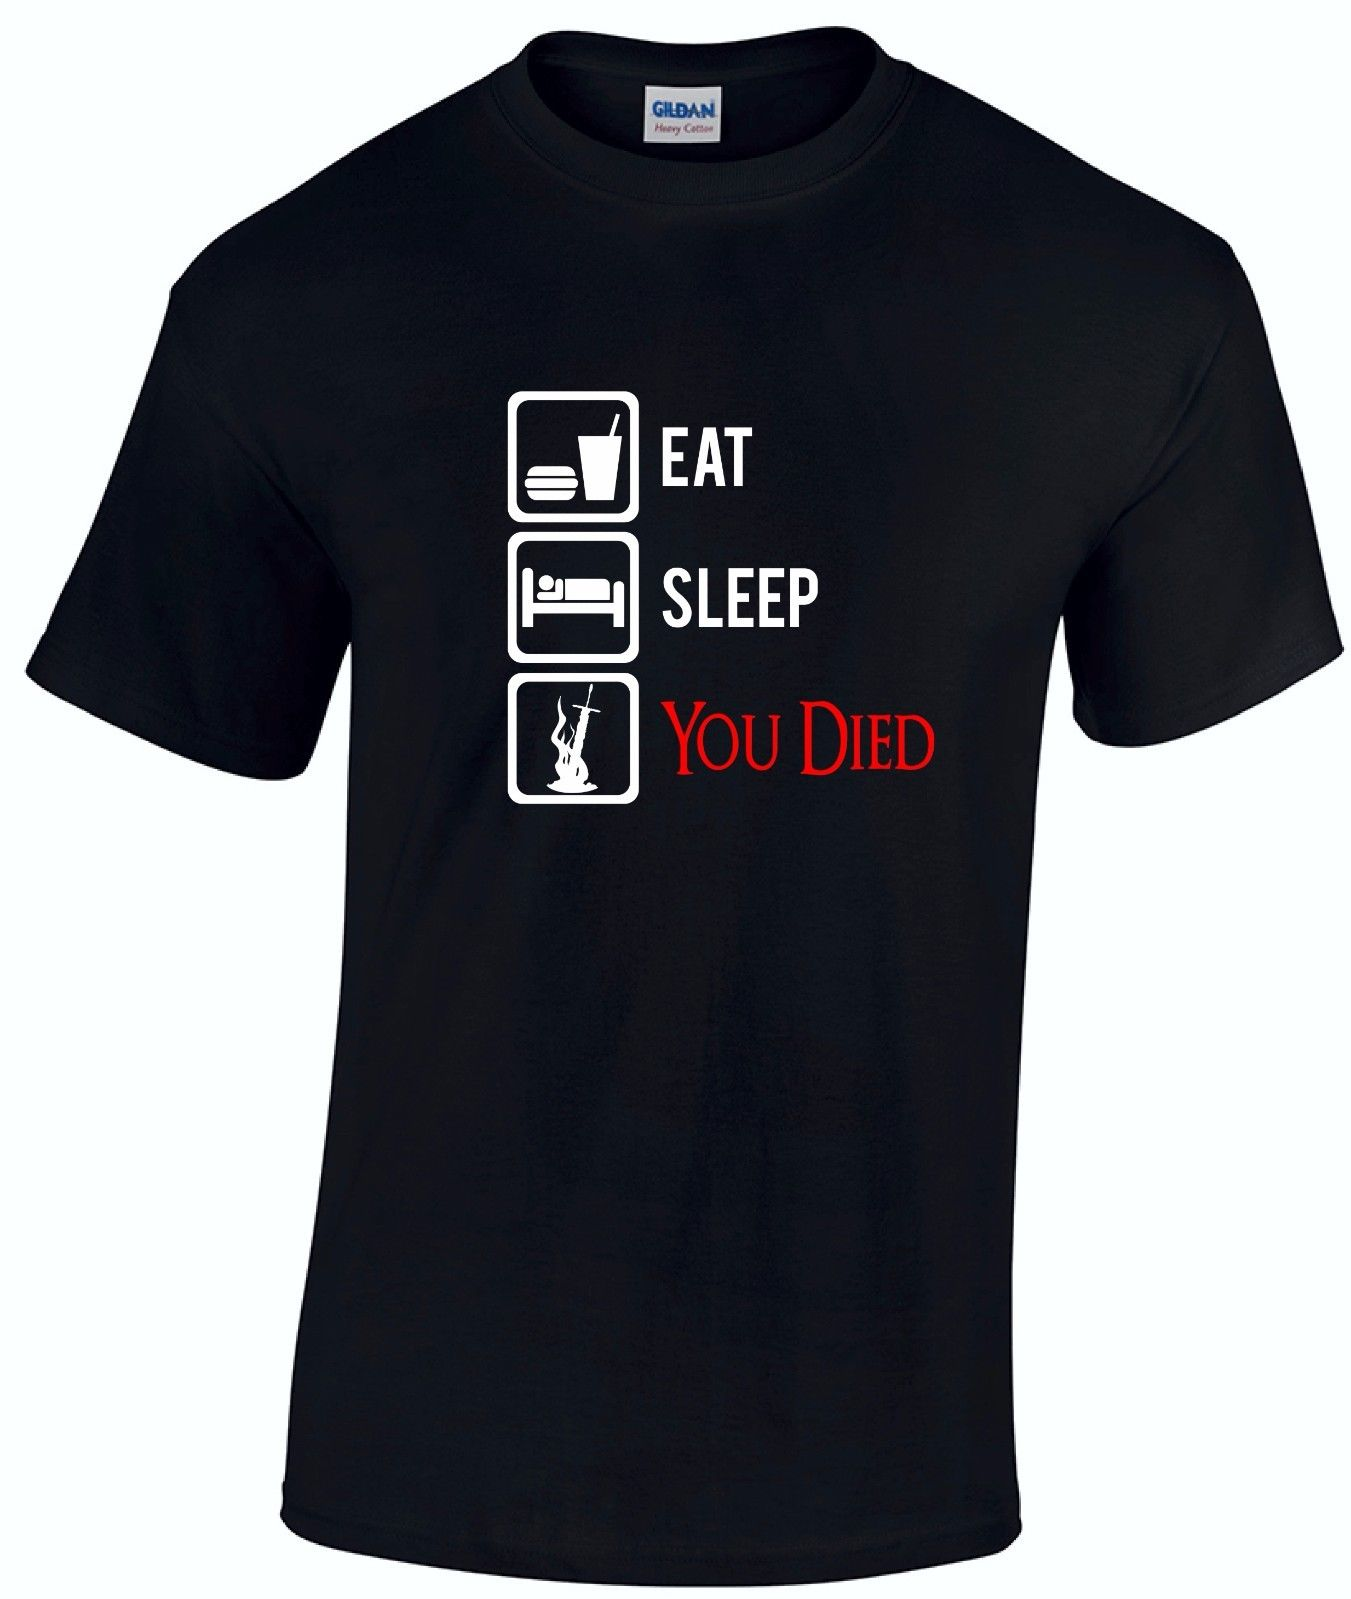 Eat Sleep You Died T-shirt - Funny Dark Souls Gamer Sunbros Fathers Day Gift Top